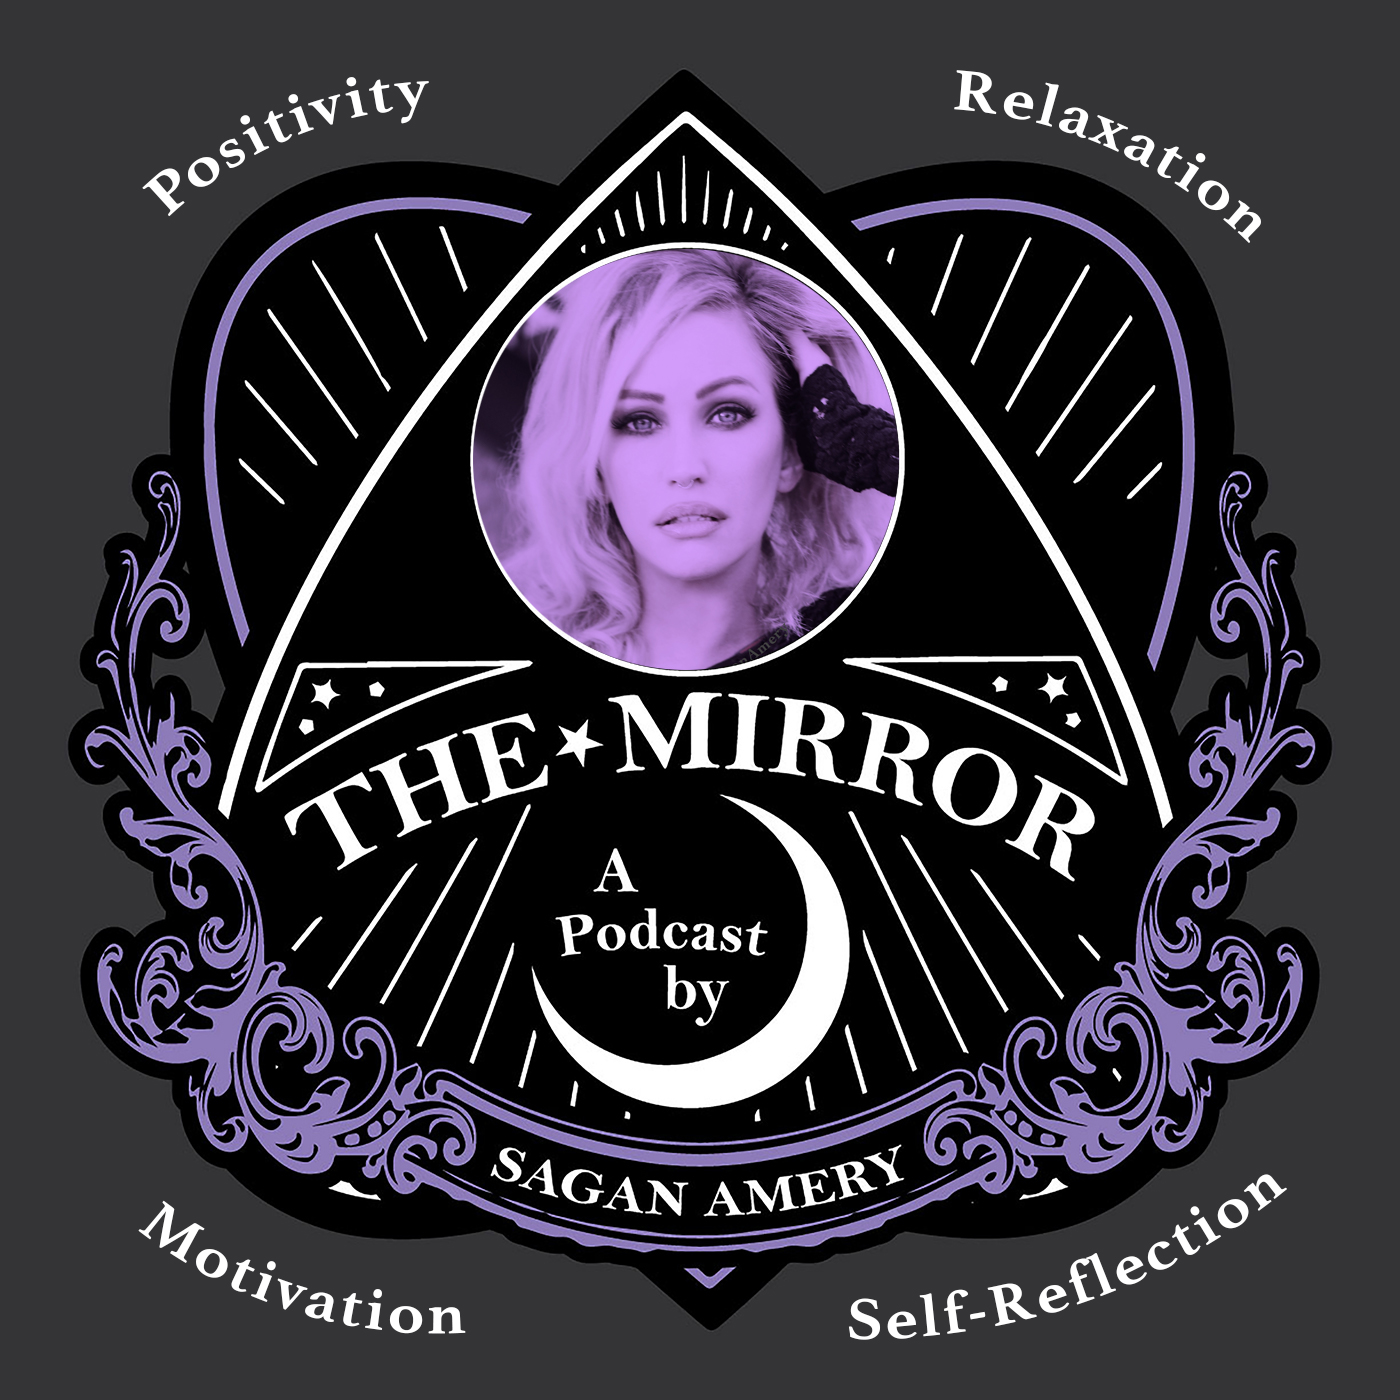 The Mirror Podcast Sagan Amery Positivity Relaxation Motivation Self-Reflection Law of Attraction Manifesting Manifest